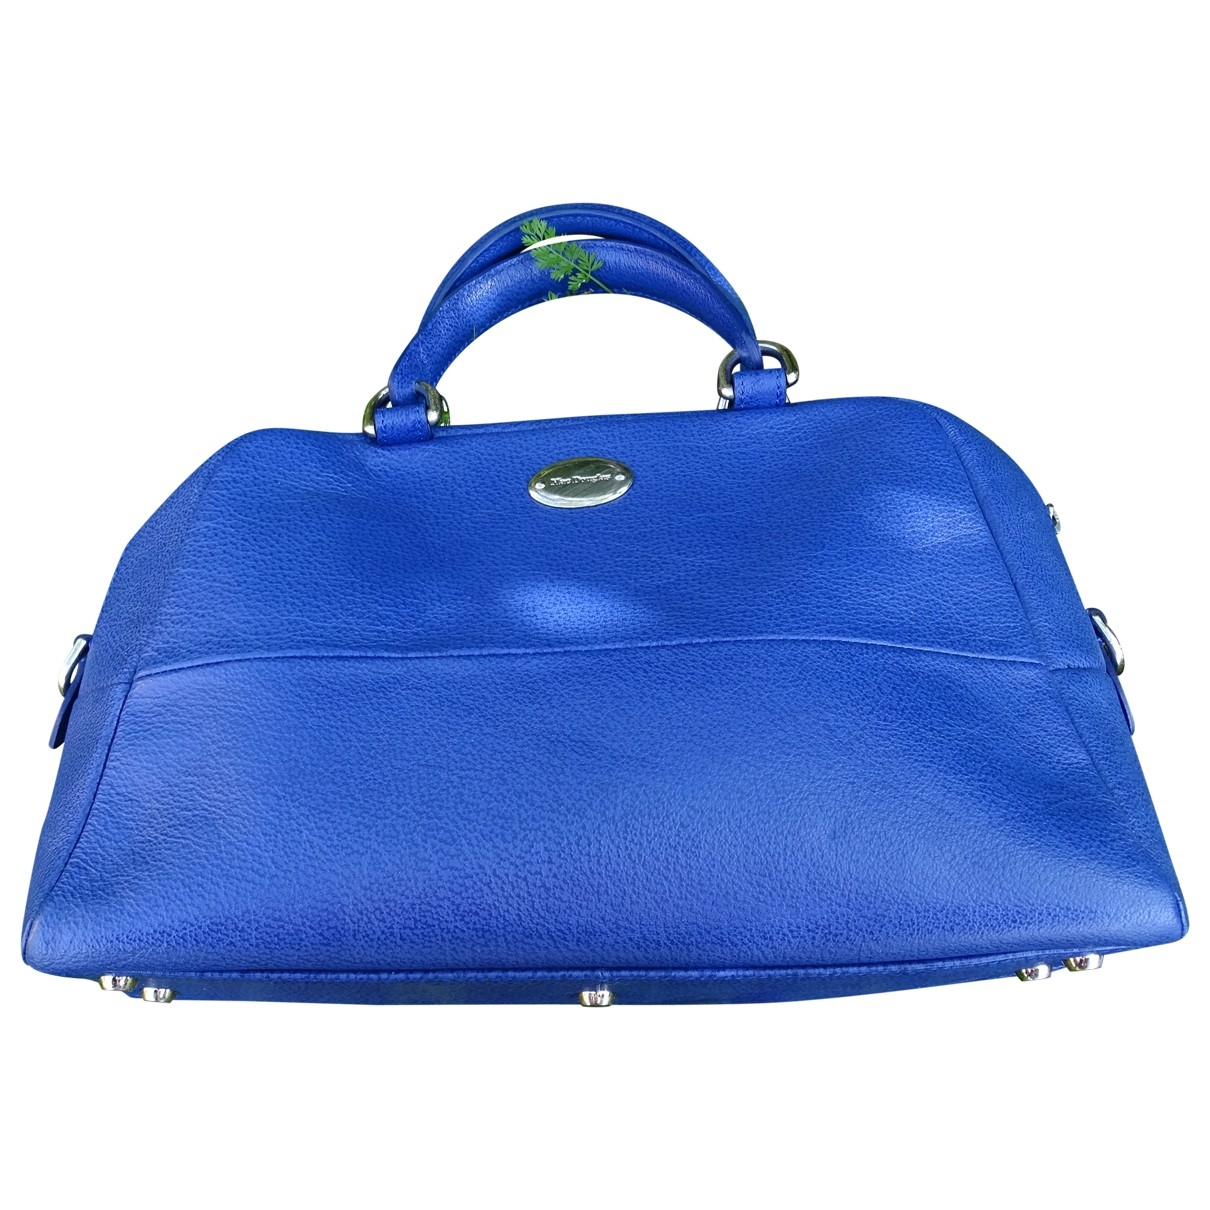 Mac Douglas \N Blue Leather handbag for Women \N